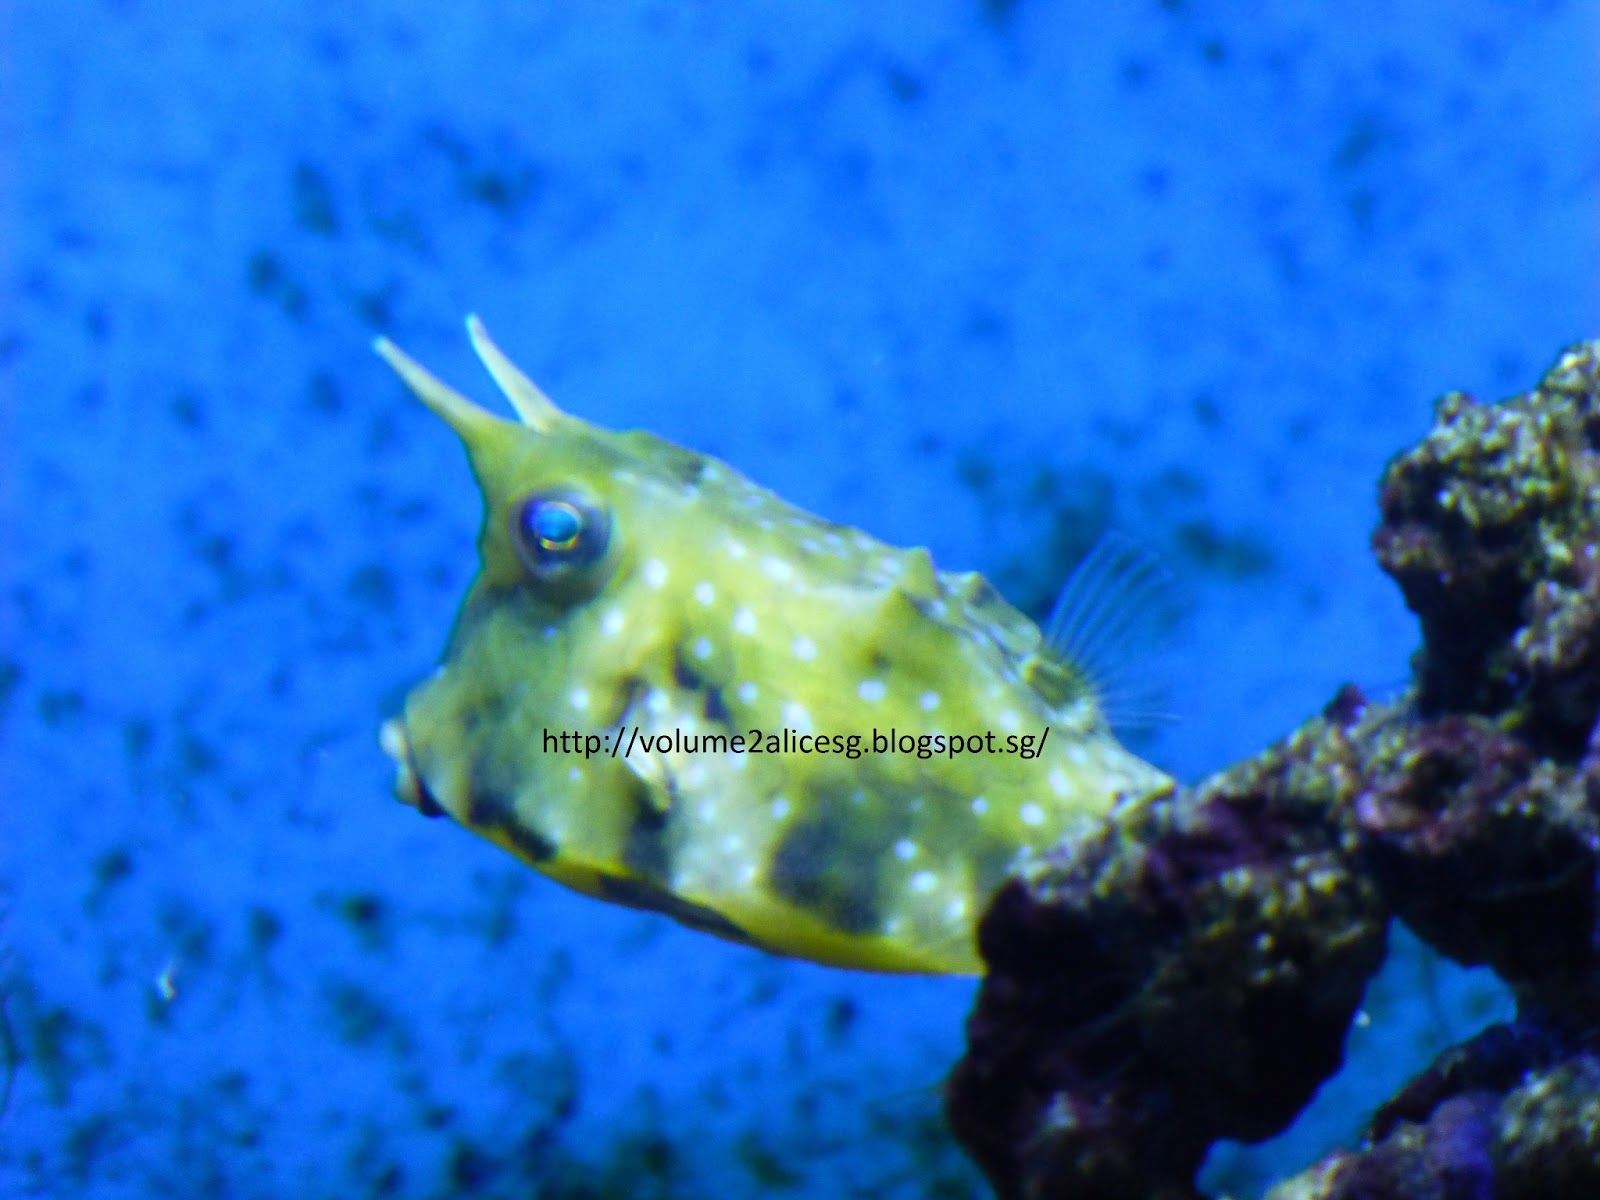 Fish aquarium in sentosa - There S So Much To View And So Many Different Species Of The Fishes That Many I Am So Alien With If Not Mistaken The Below Fish Is The Long Horn Cowfish